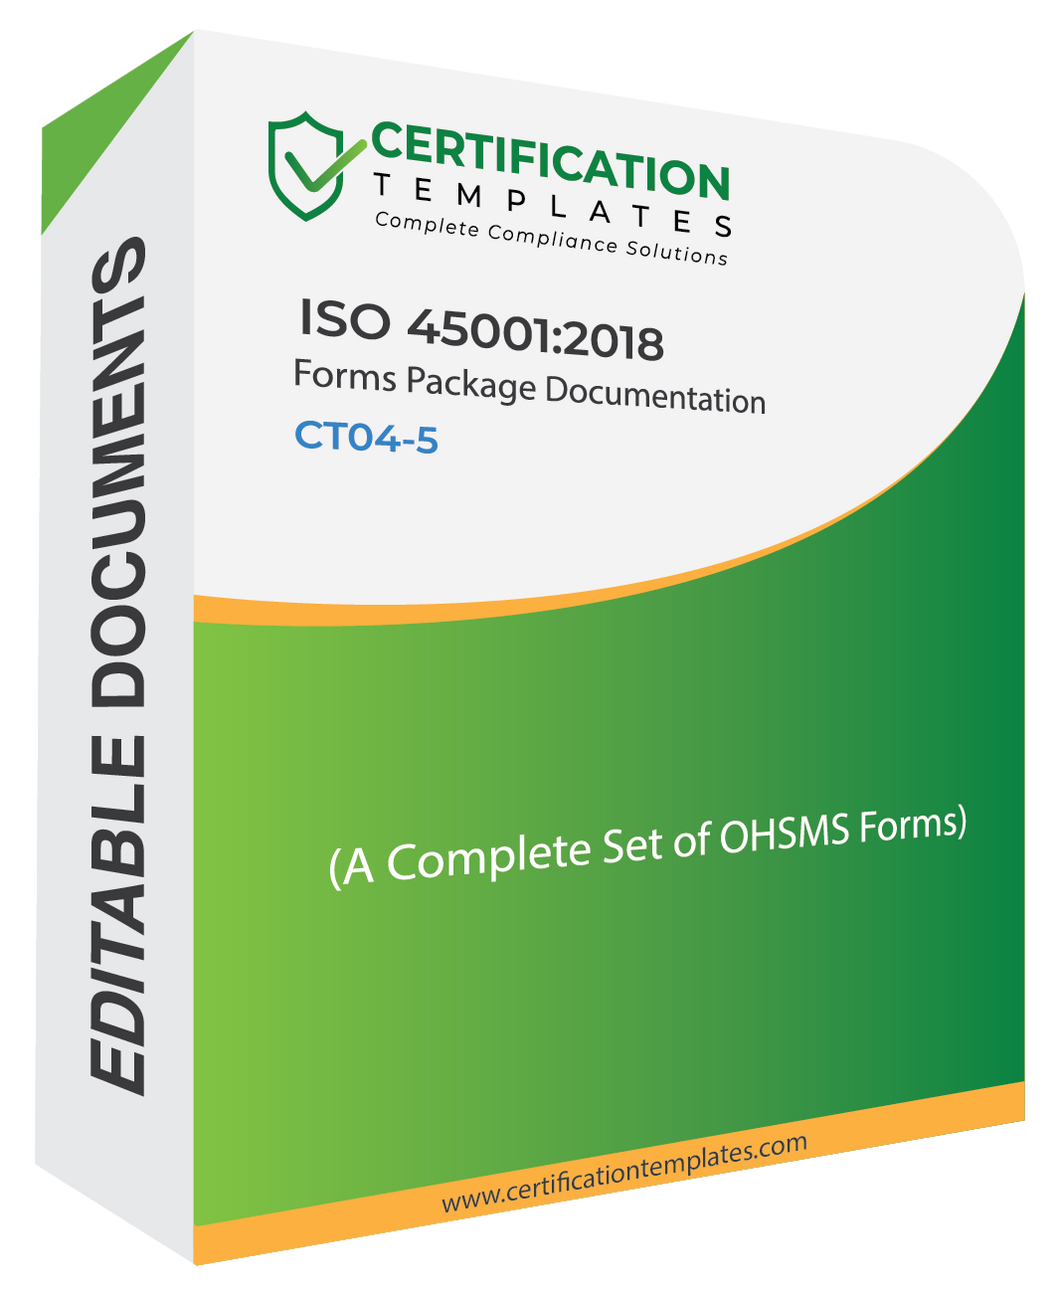 ISO 45001 Forms Package